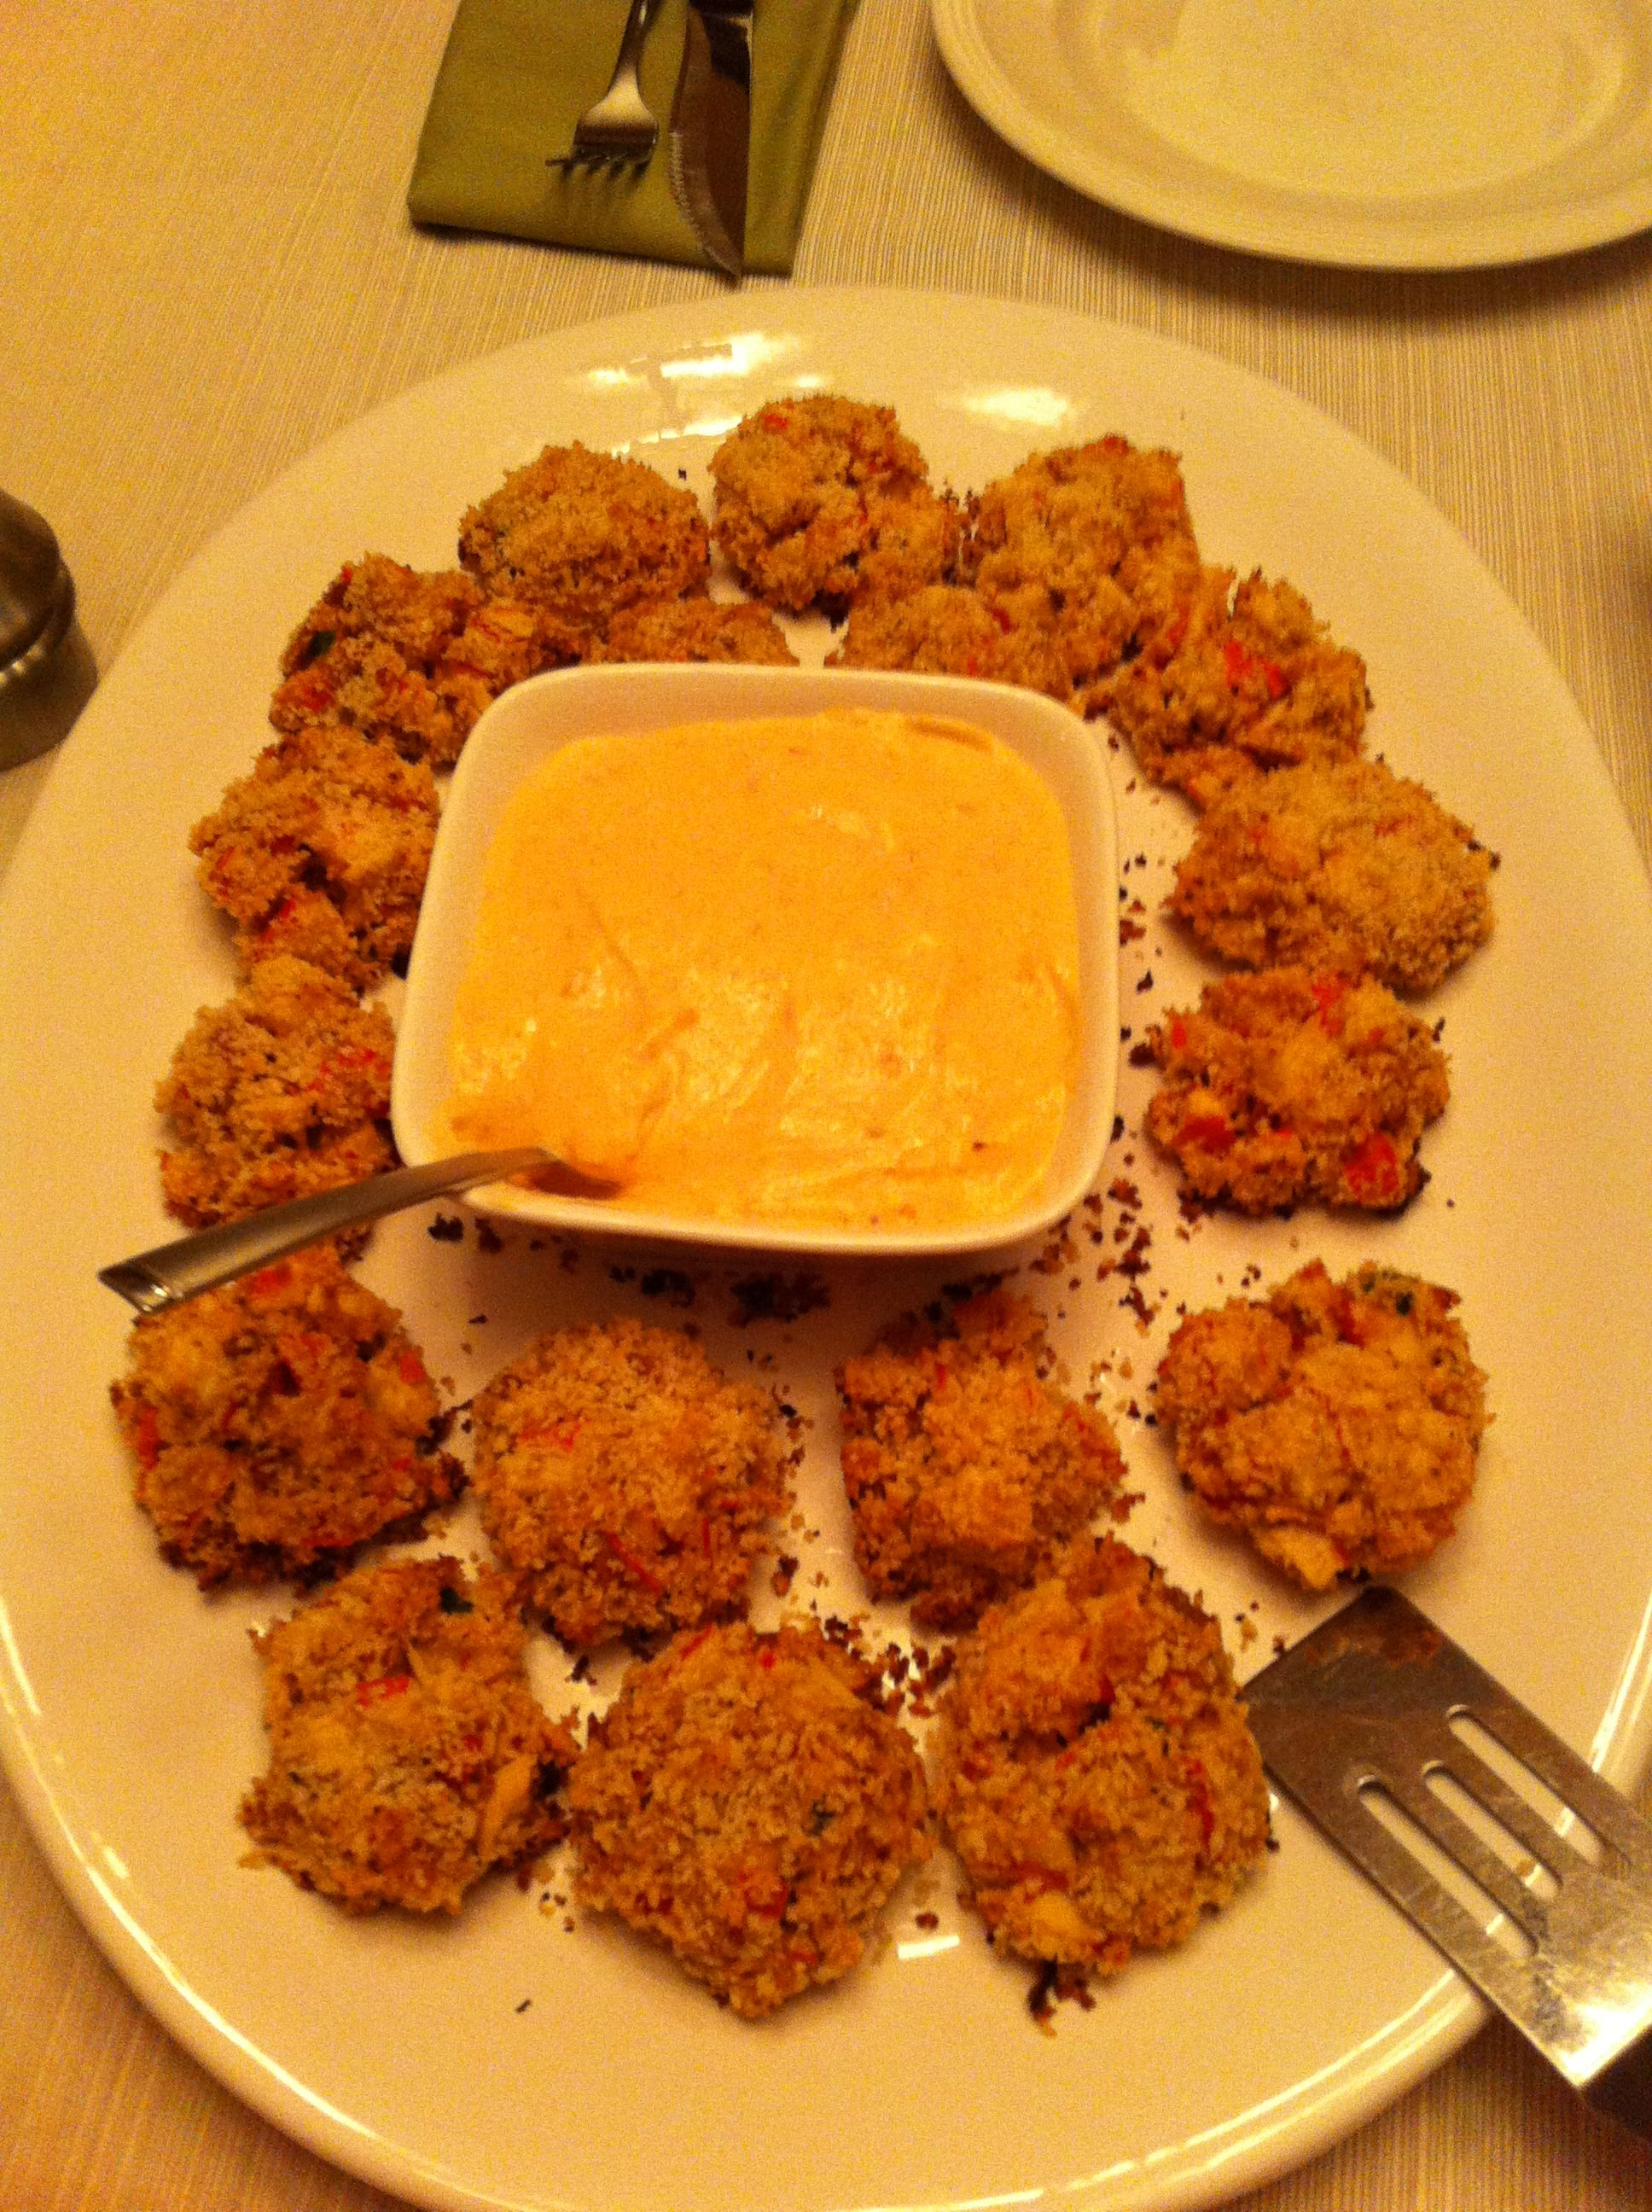 Easy Crab Cake Recipe Using Canned Crab Meat